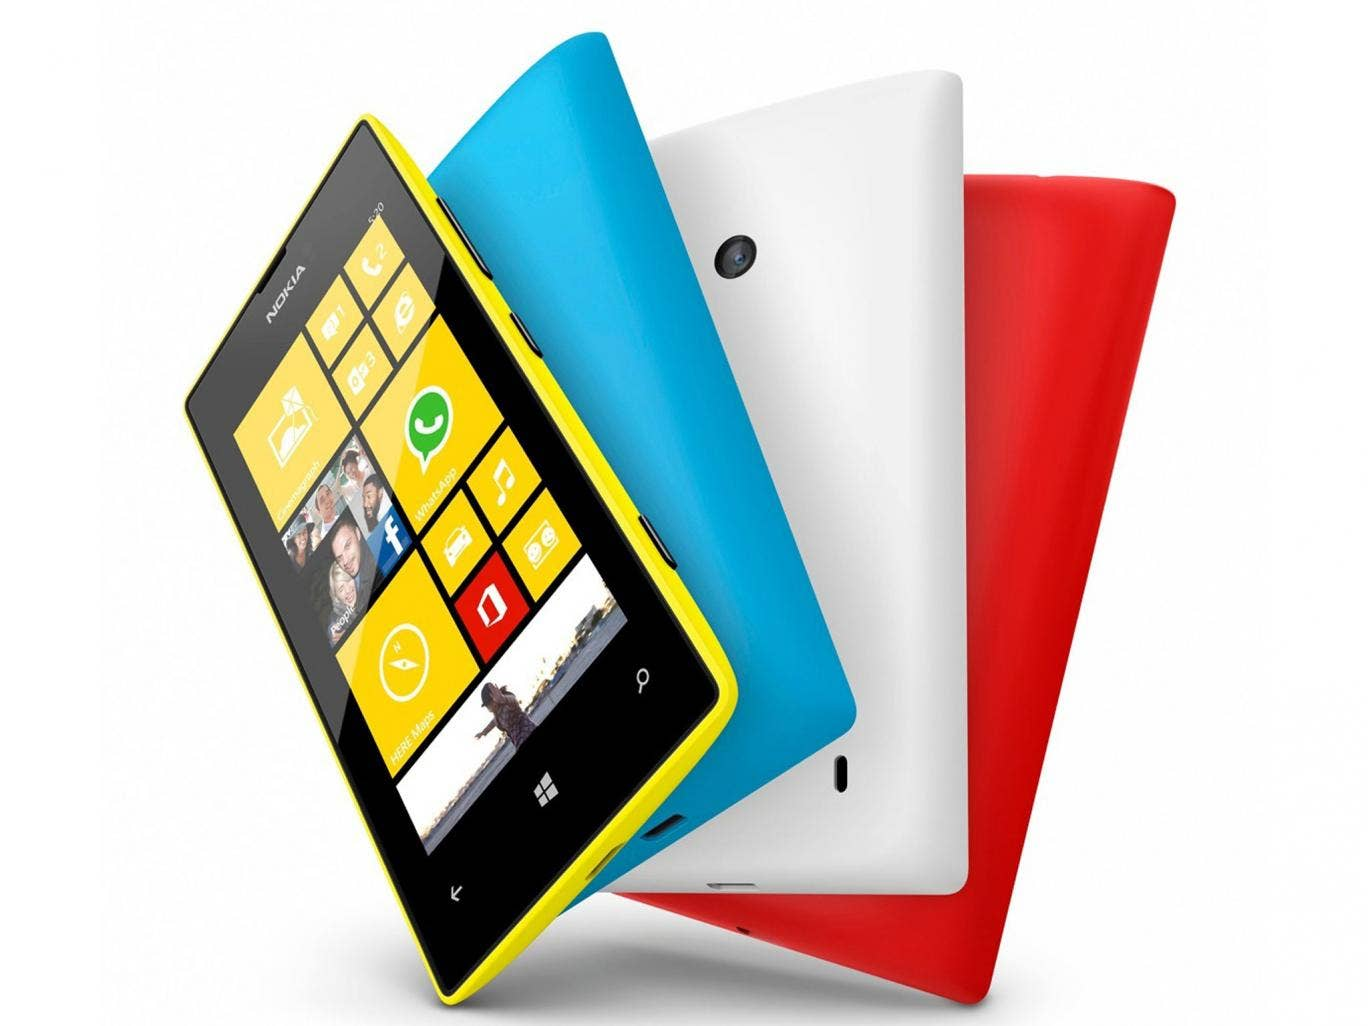 The Nokia Lumia 520 is on offer with an Xbox in a January sale